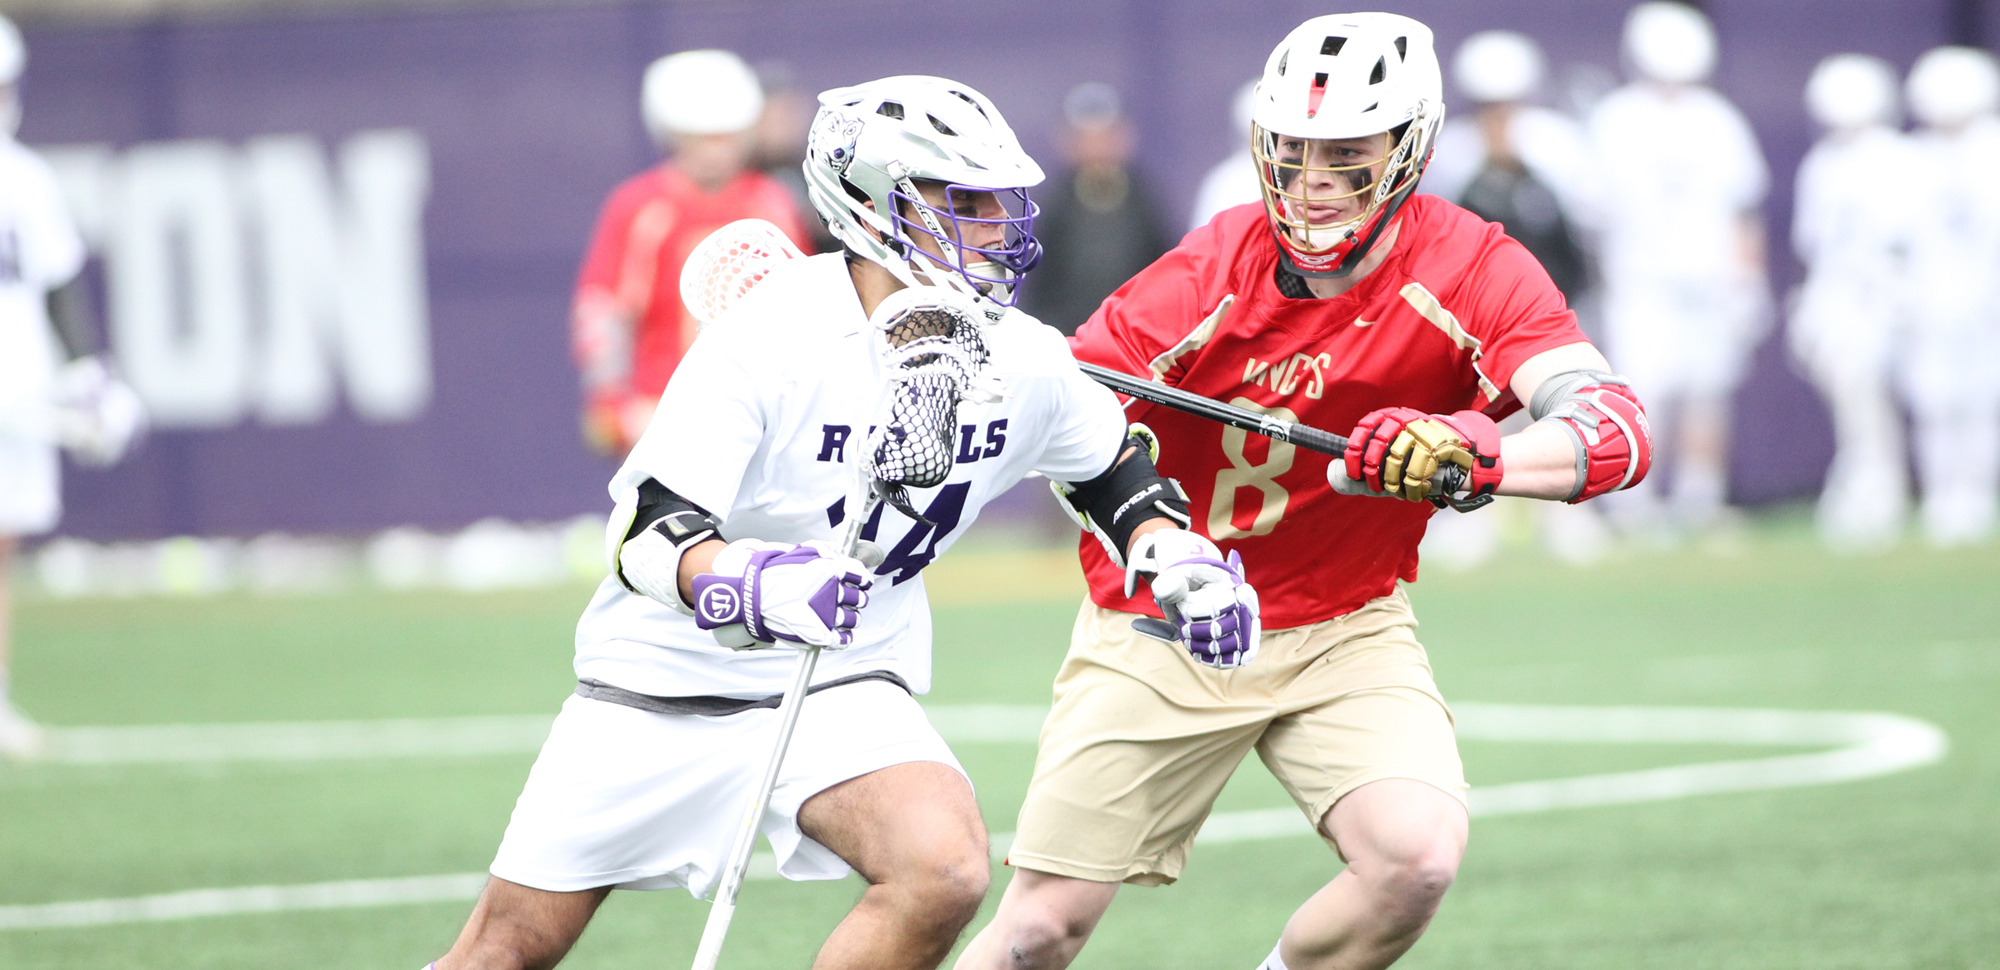 Senior Tim Dolan factored into three key goals as Scranton used a huge second half surge to defeat Susquehanna in Saturday's Landmark Conference opener. © Photo by Timothy R. Dougherty / doubleeaglephotography.com